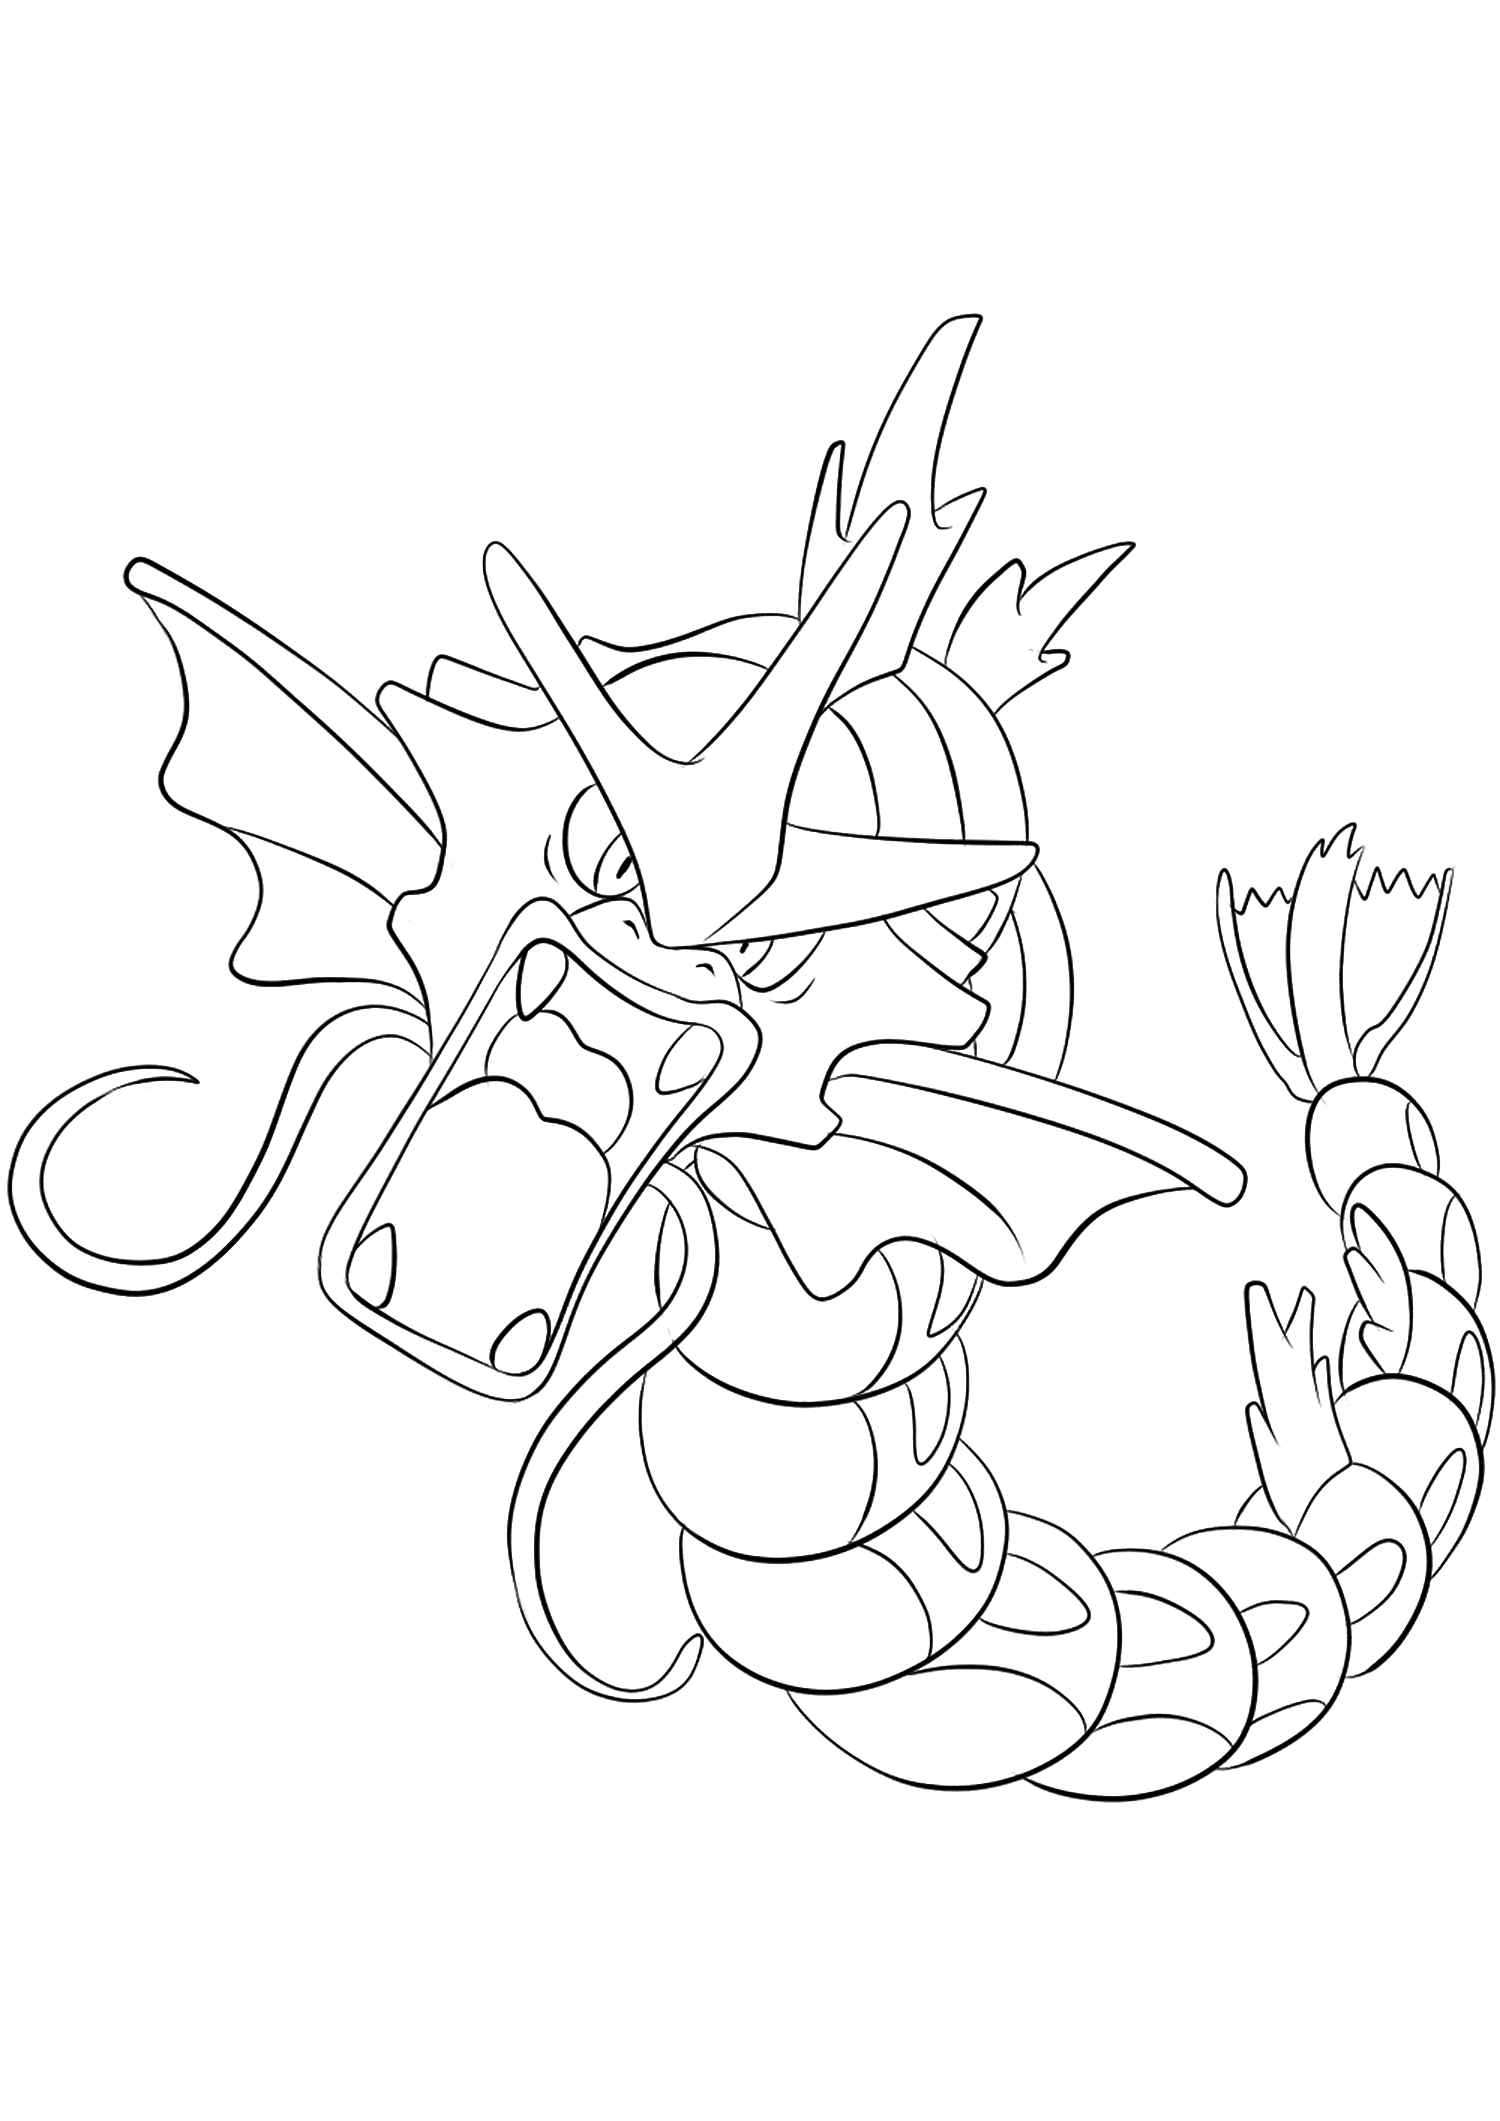 water pokemon coloring pages all pokemon coloring pages coloring home pokemon pages water coloring